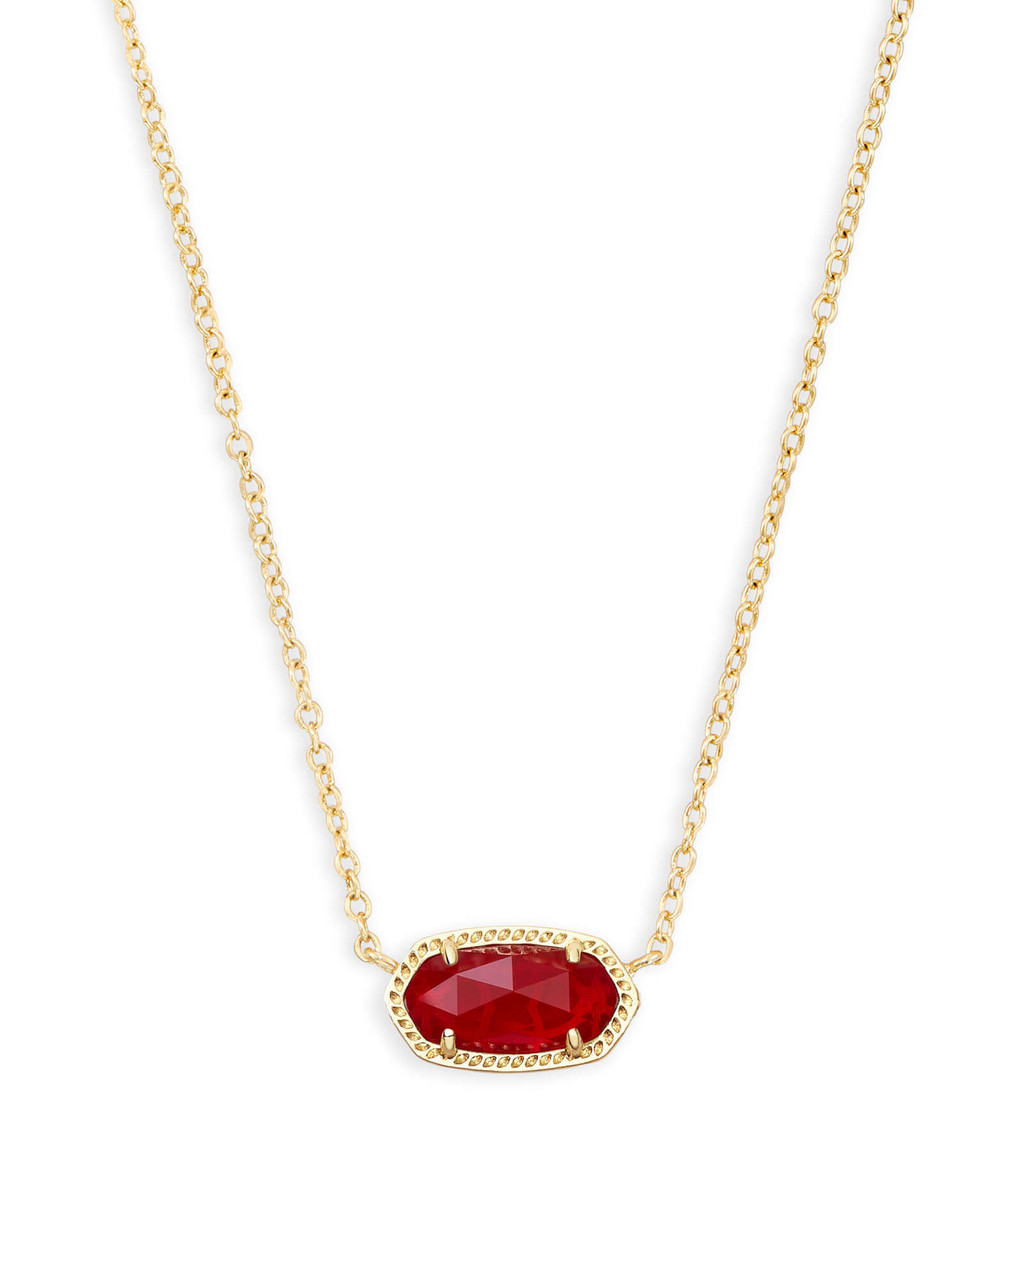 665f8cb6c4d Elisa Gold Pendant Necklace in Ruby Red